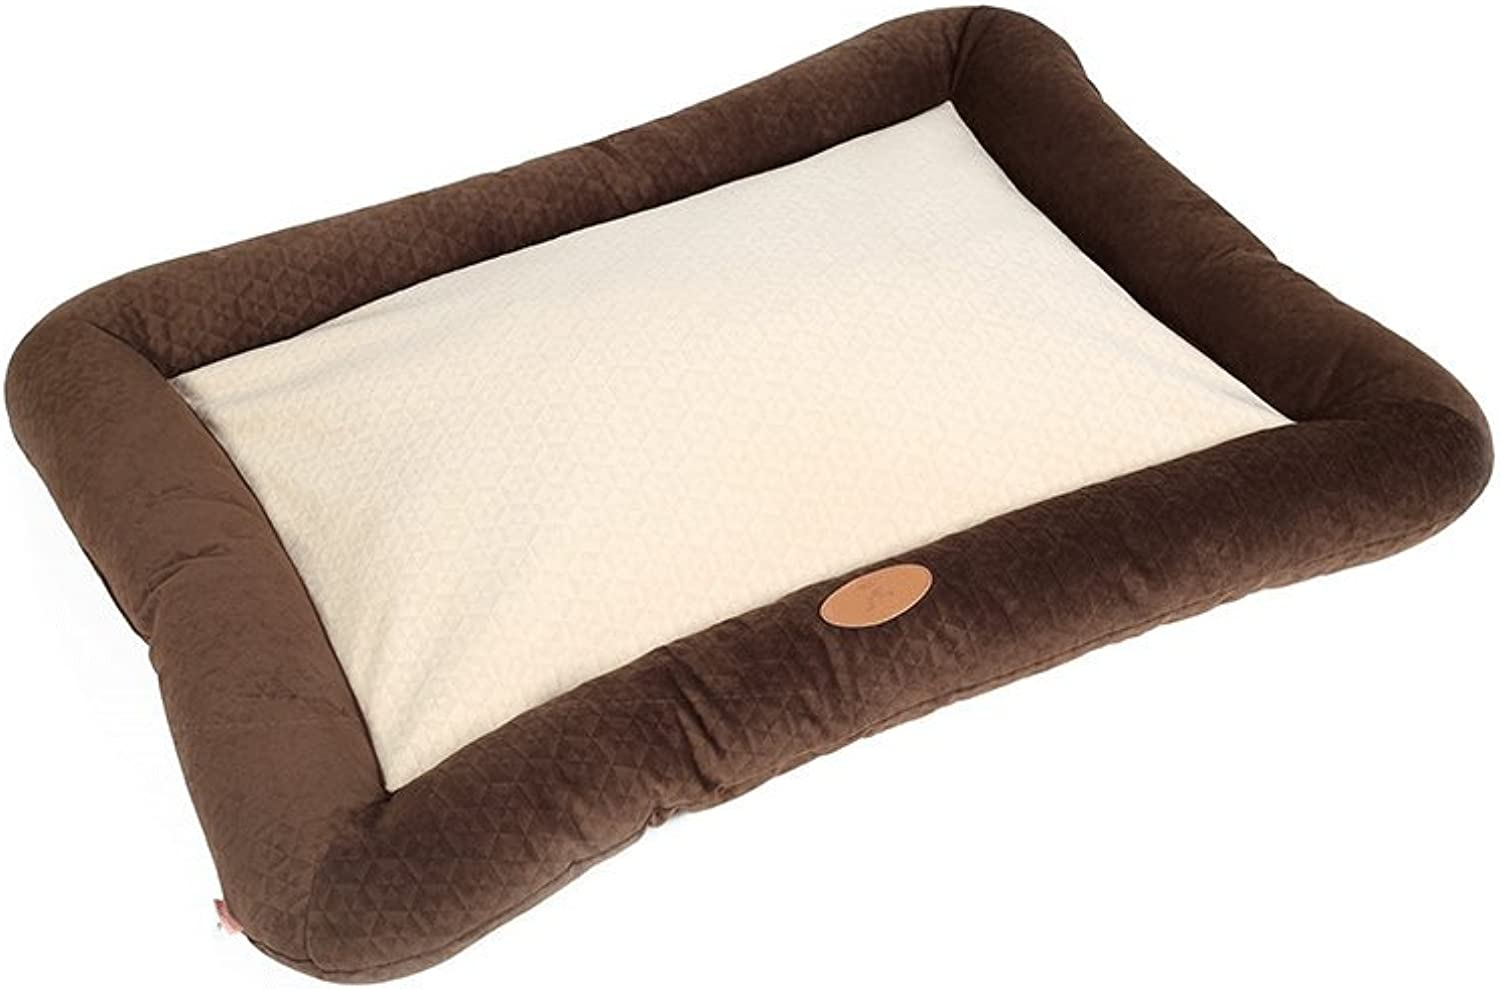 Huangyingui Ashable Plush Dog Bed With Removable Cover, Cuddly Dog Sofa, Brown, bluee (Size   M 100  80cm)